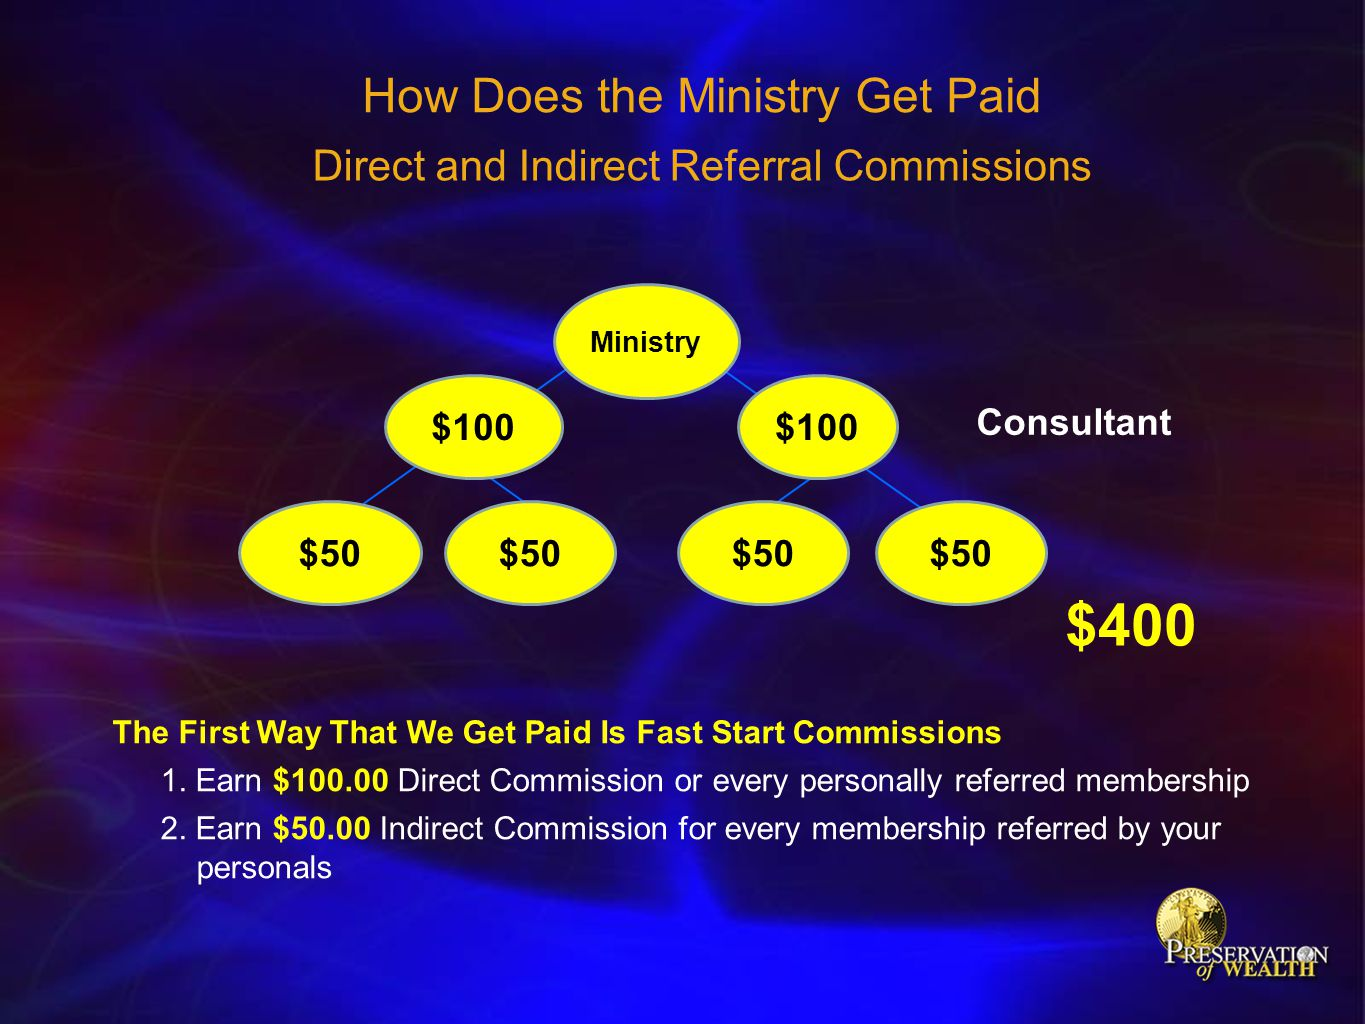 How Does the Ministry Get Paid The First Way That We Get Paid Is Fast Start Commissions 1. Earn $100.00 Direct Commission or every personally referred